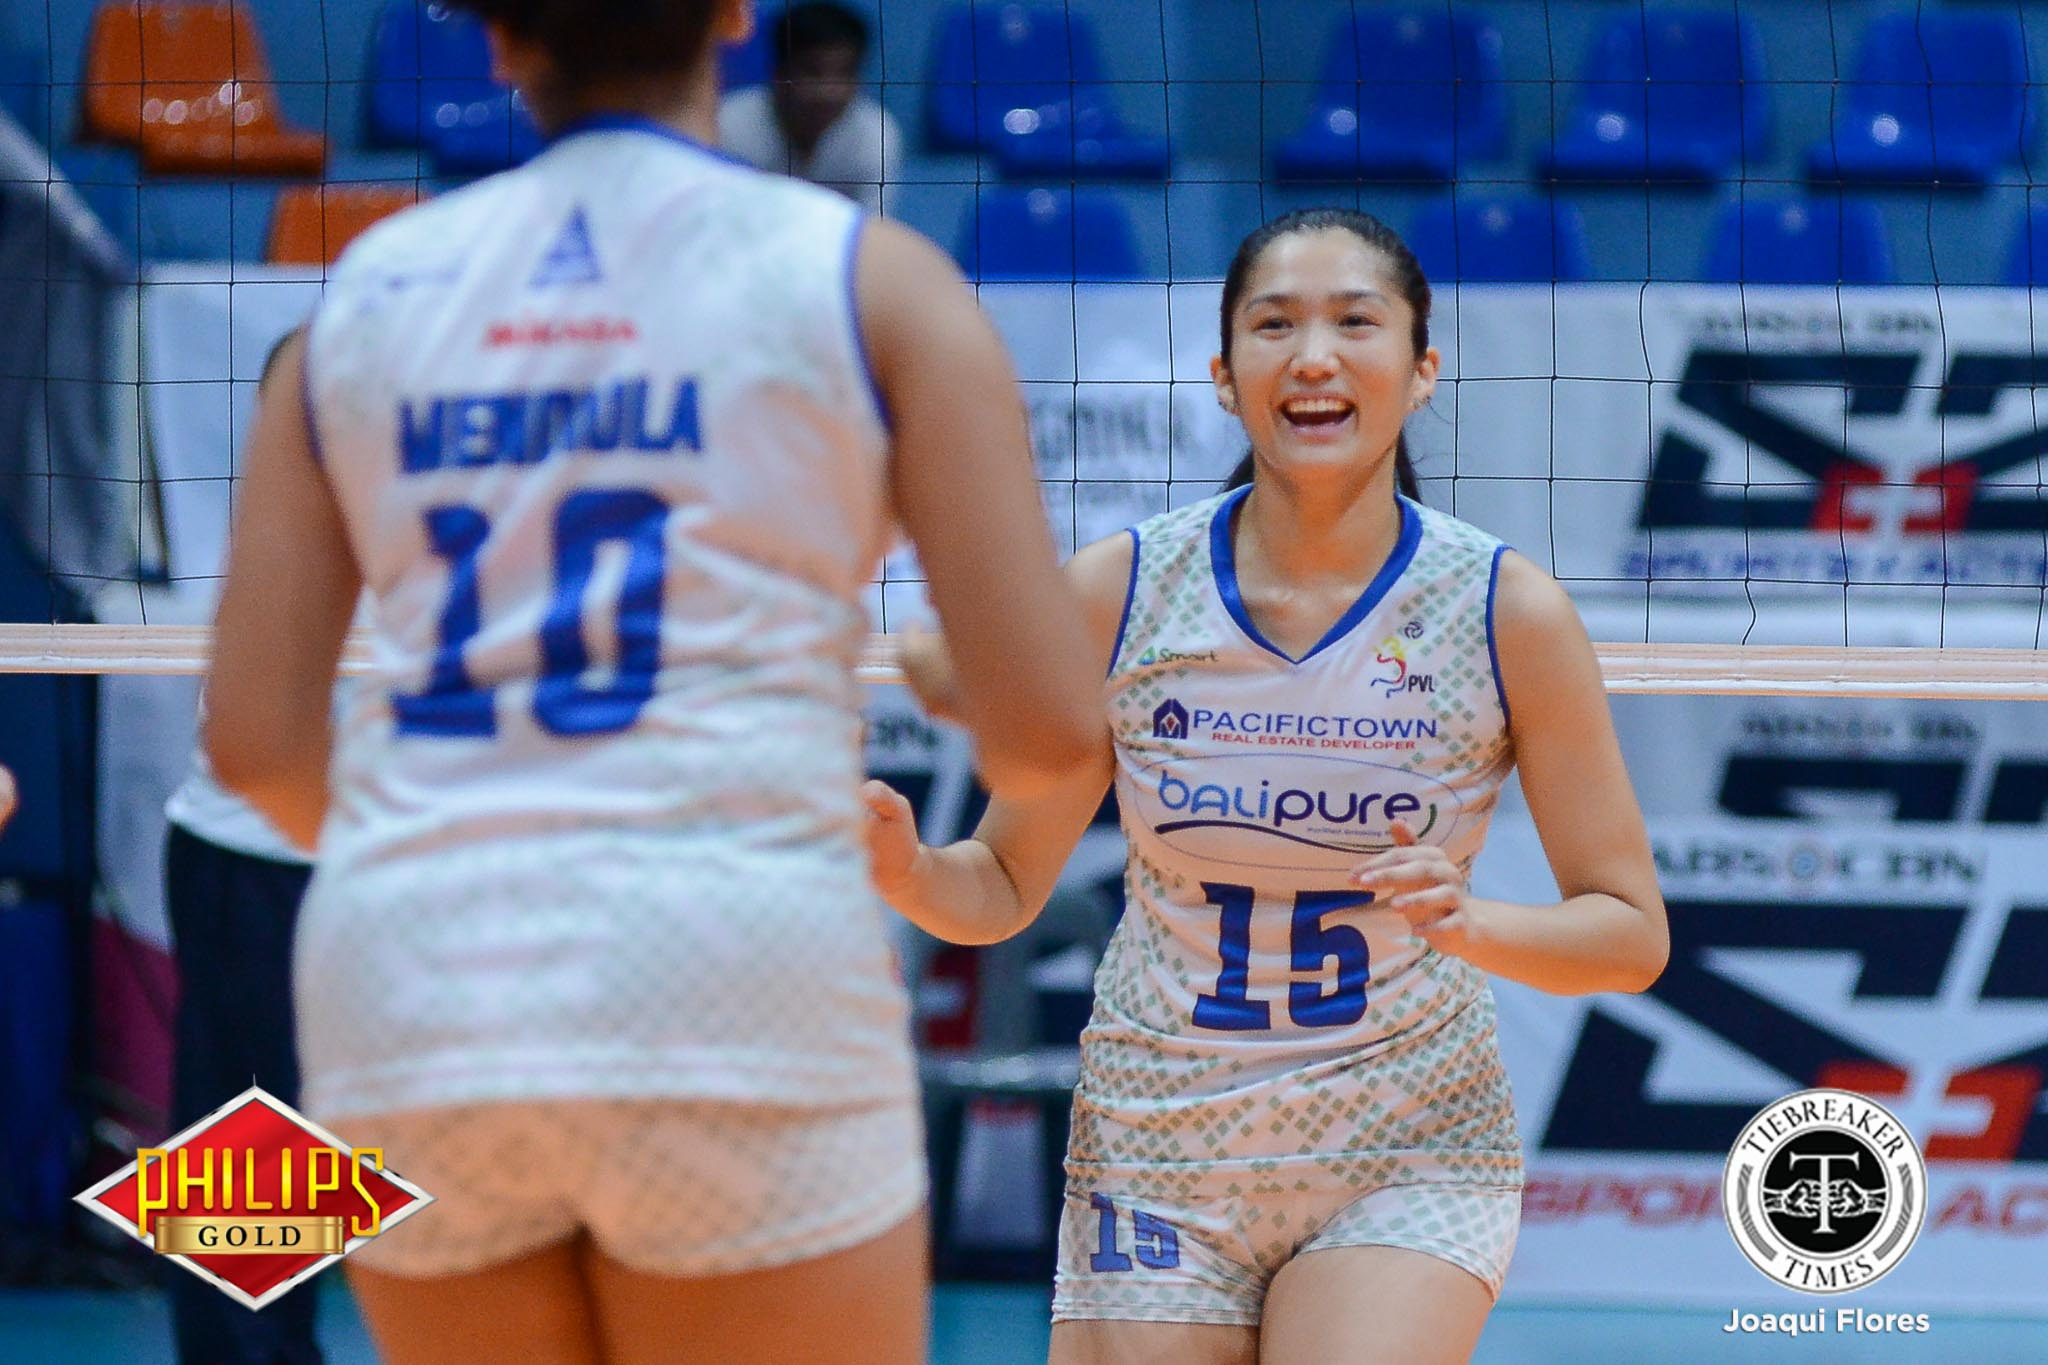 Philippine Sports News - Tiebreaker Times Jerrili Malabanan feted as Philips Gold-PVL Player of the Week News PVL Volleyball  PVL Player of the Week Jerrili Malabanan Bali Pure Purest Water Defenders 2017 PVL Women's Open Conference 2017 PVL Season